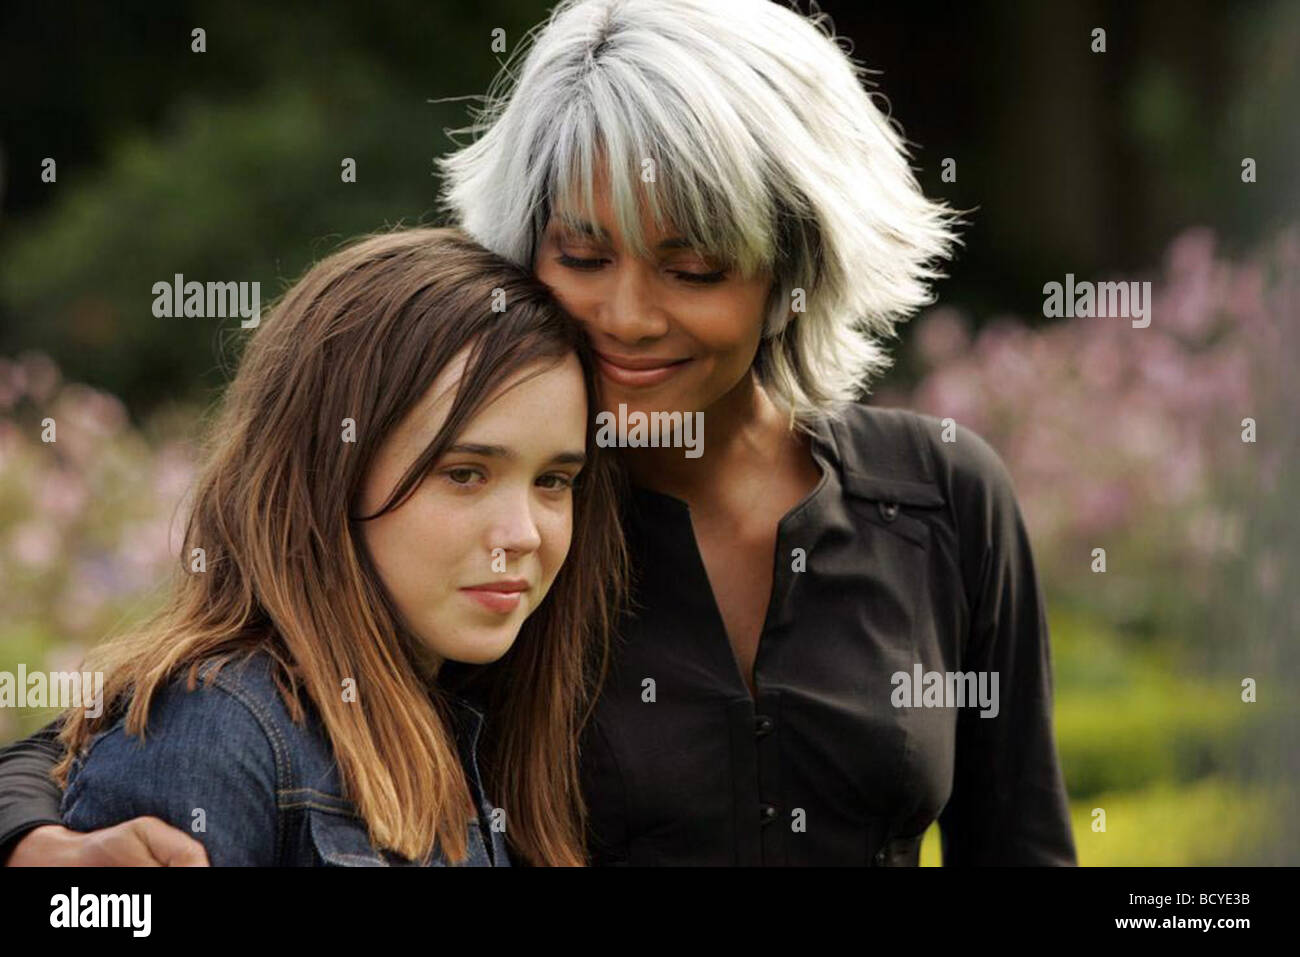 X Men The Last Stand Year 2006 Director Brett Ratner Ellen Page Stock Photo Alamy